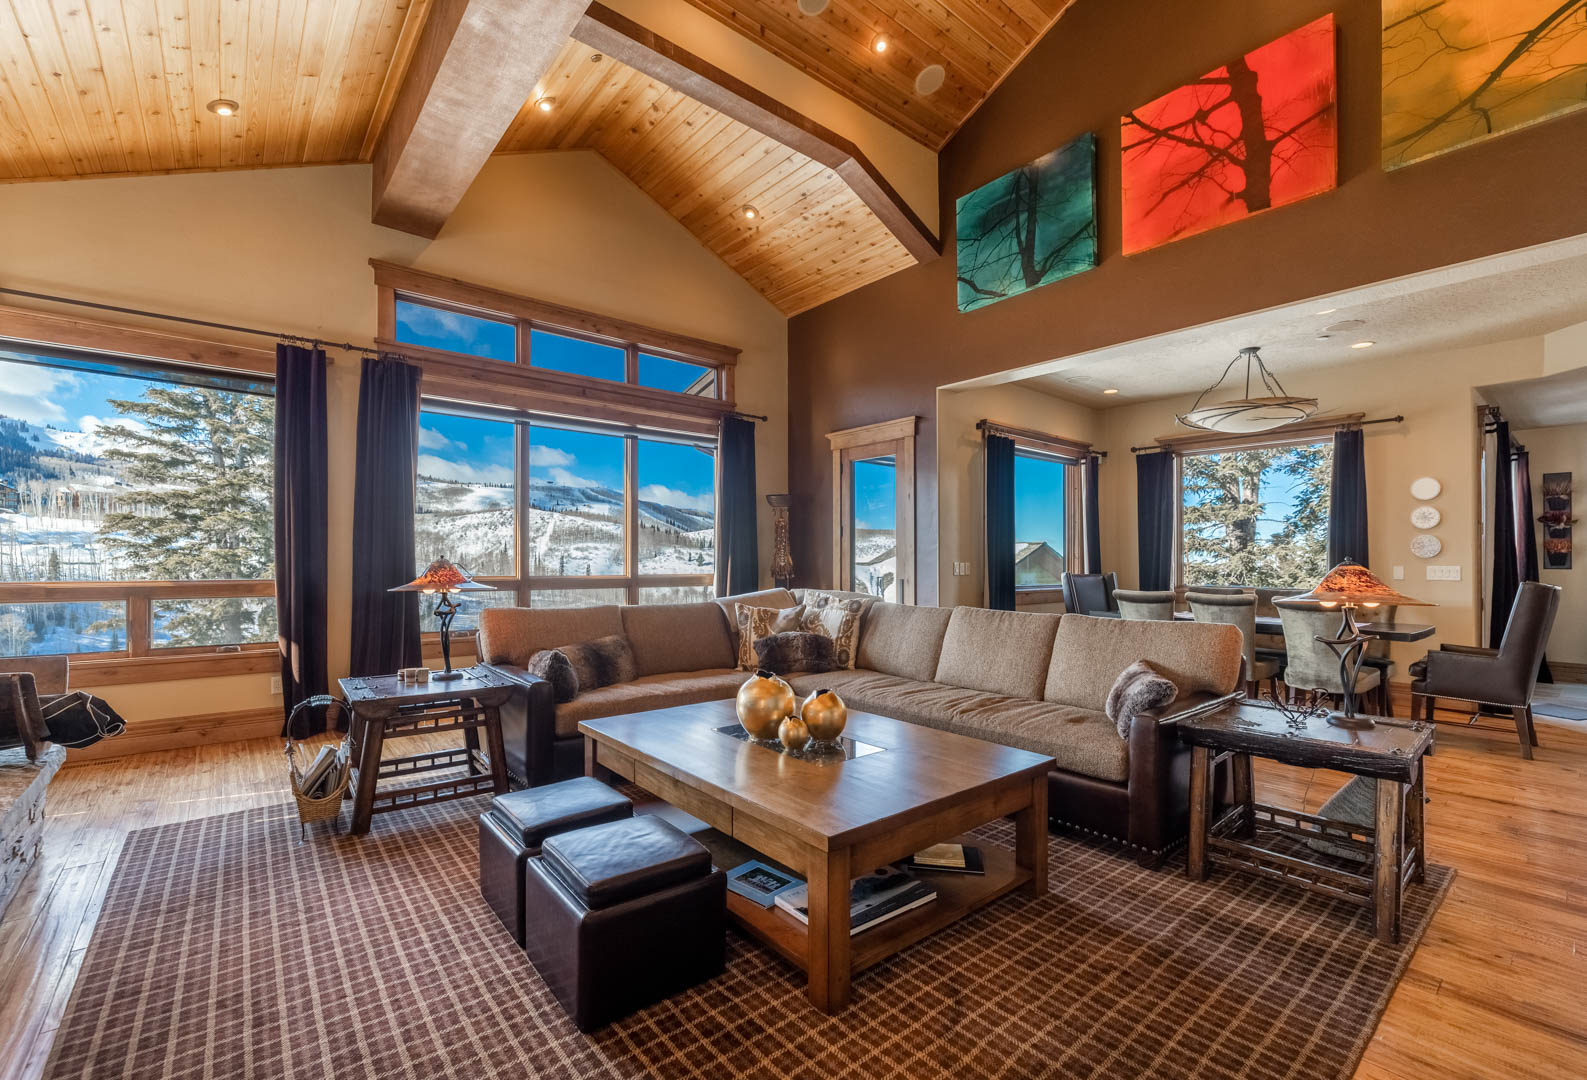 6587-Lookout-Drive-11-Matthew-Sidford-Windermere-Real-Estate-Utah-Park-City-7